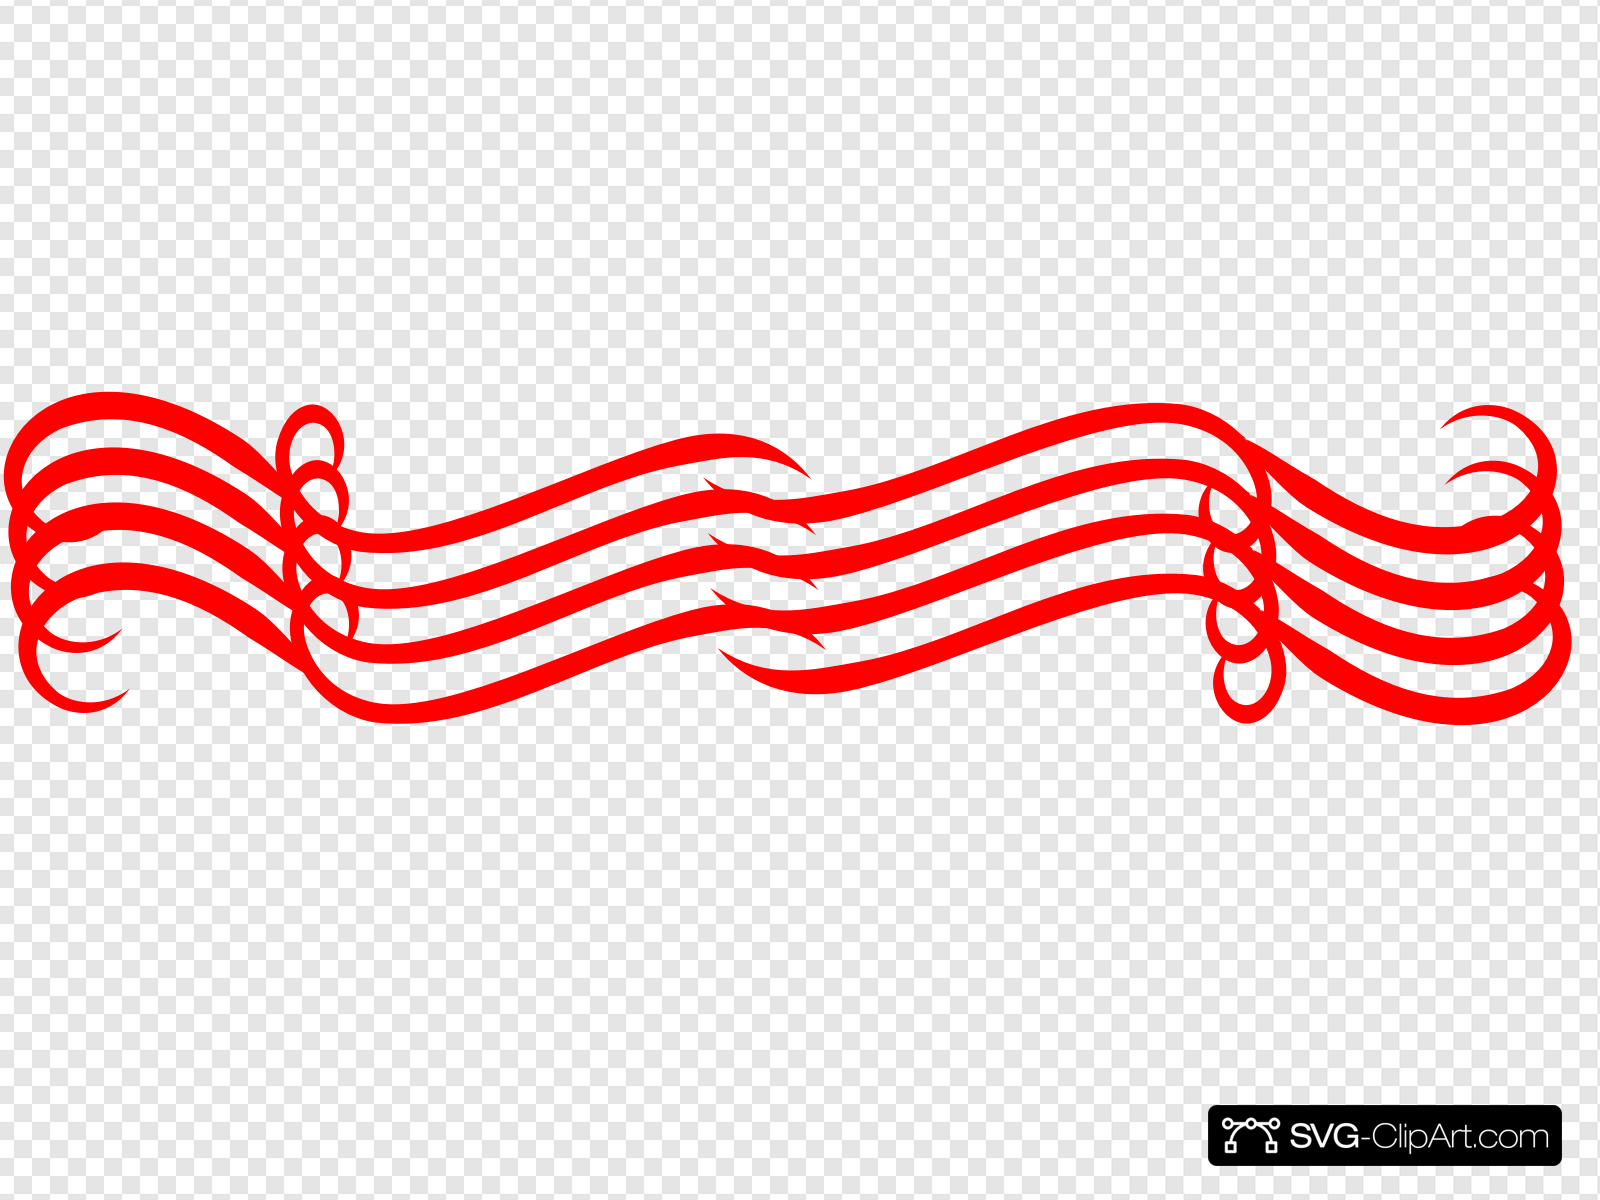 Big Red Divider Clip art, Icon and SVG.